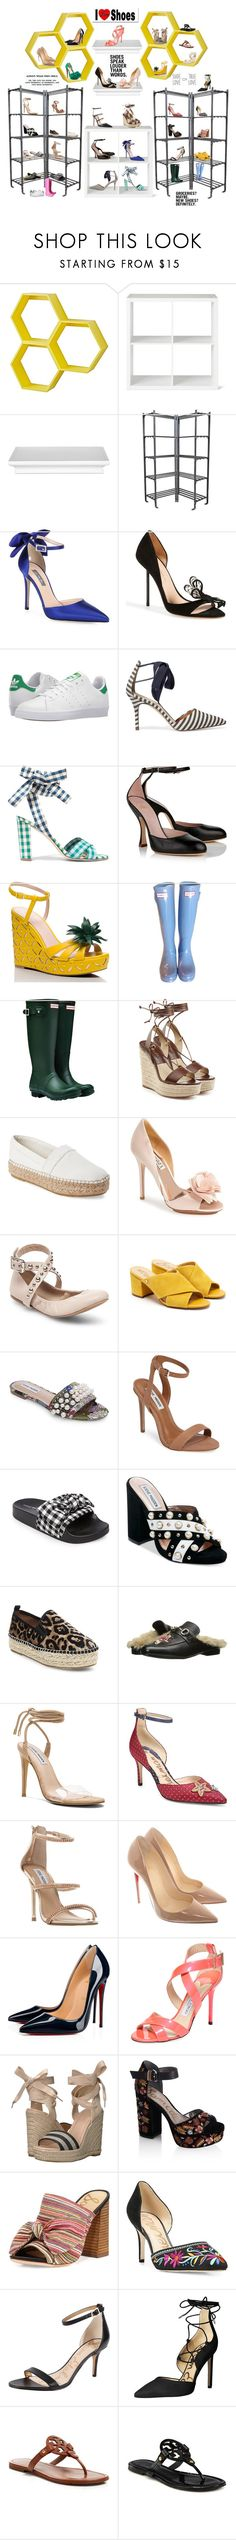 """""""What's in your Closet ? For Ultimate Shoe Lovers Group"""" by deborah-518 ❤ liked on Polyvore featuring Threshold, SJP, Christian Louboutin, Kurt Geiger, adidas, J.Crew, Vivienne Westwood, Kate Spade, Hunter and Michael Kors"""